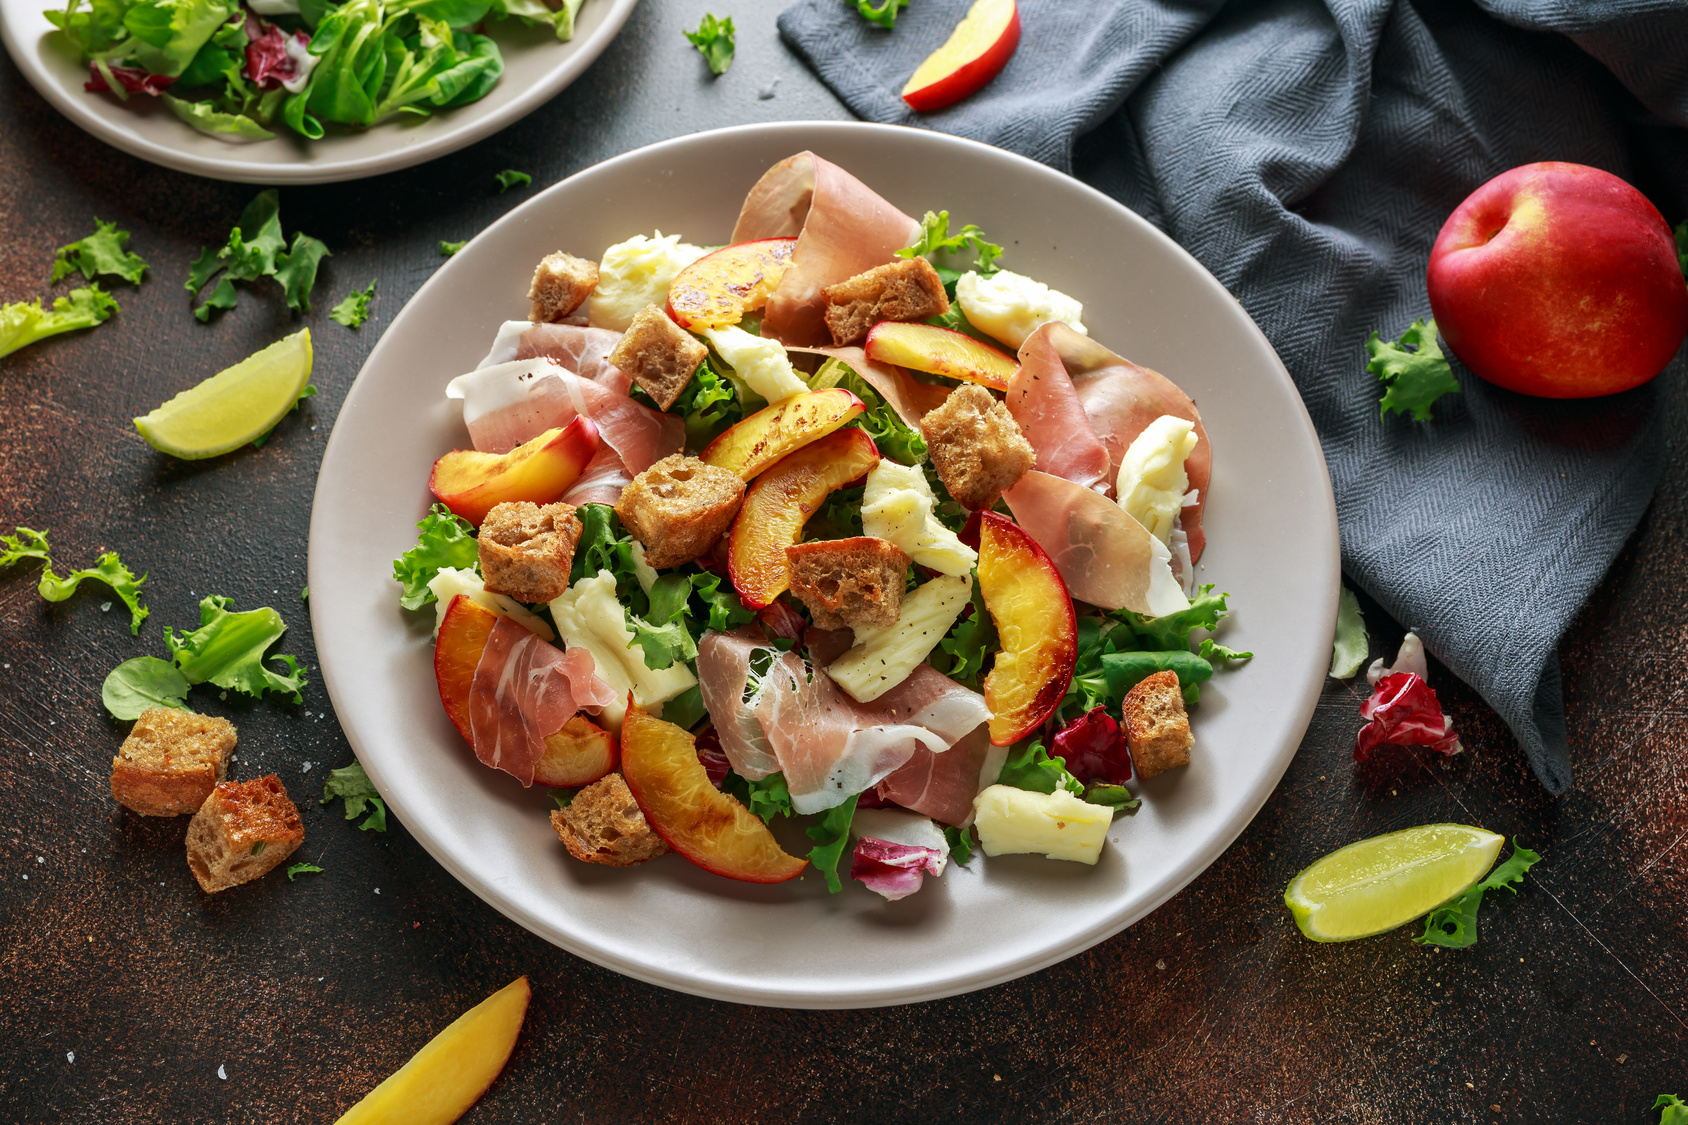 Fresh grilled peach salad with green mix, cheese, prosciutto and crouton.